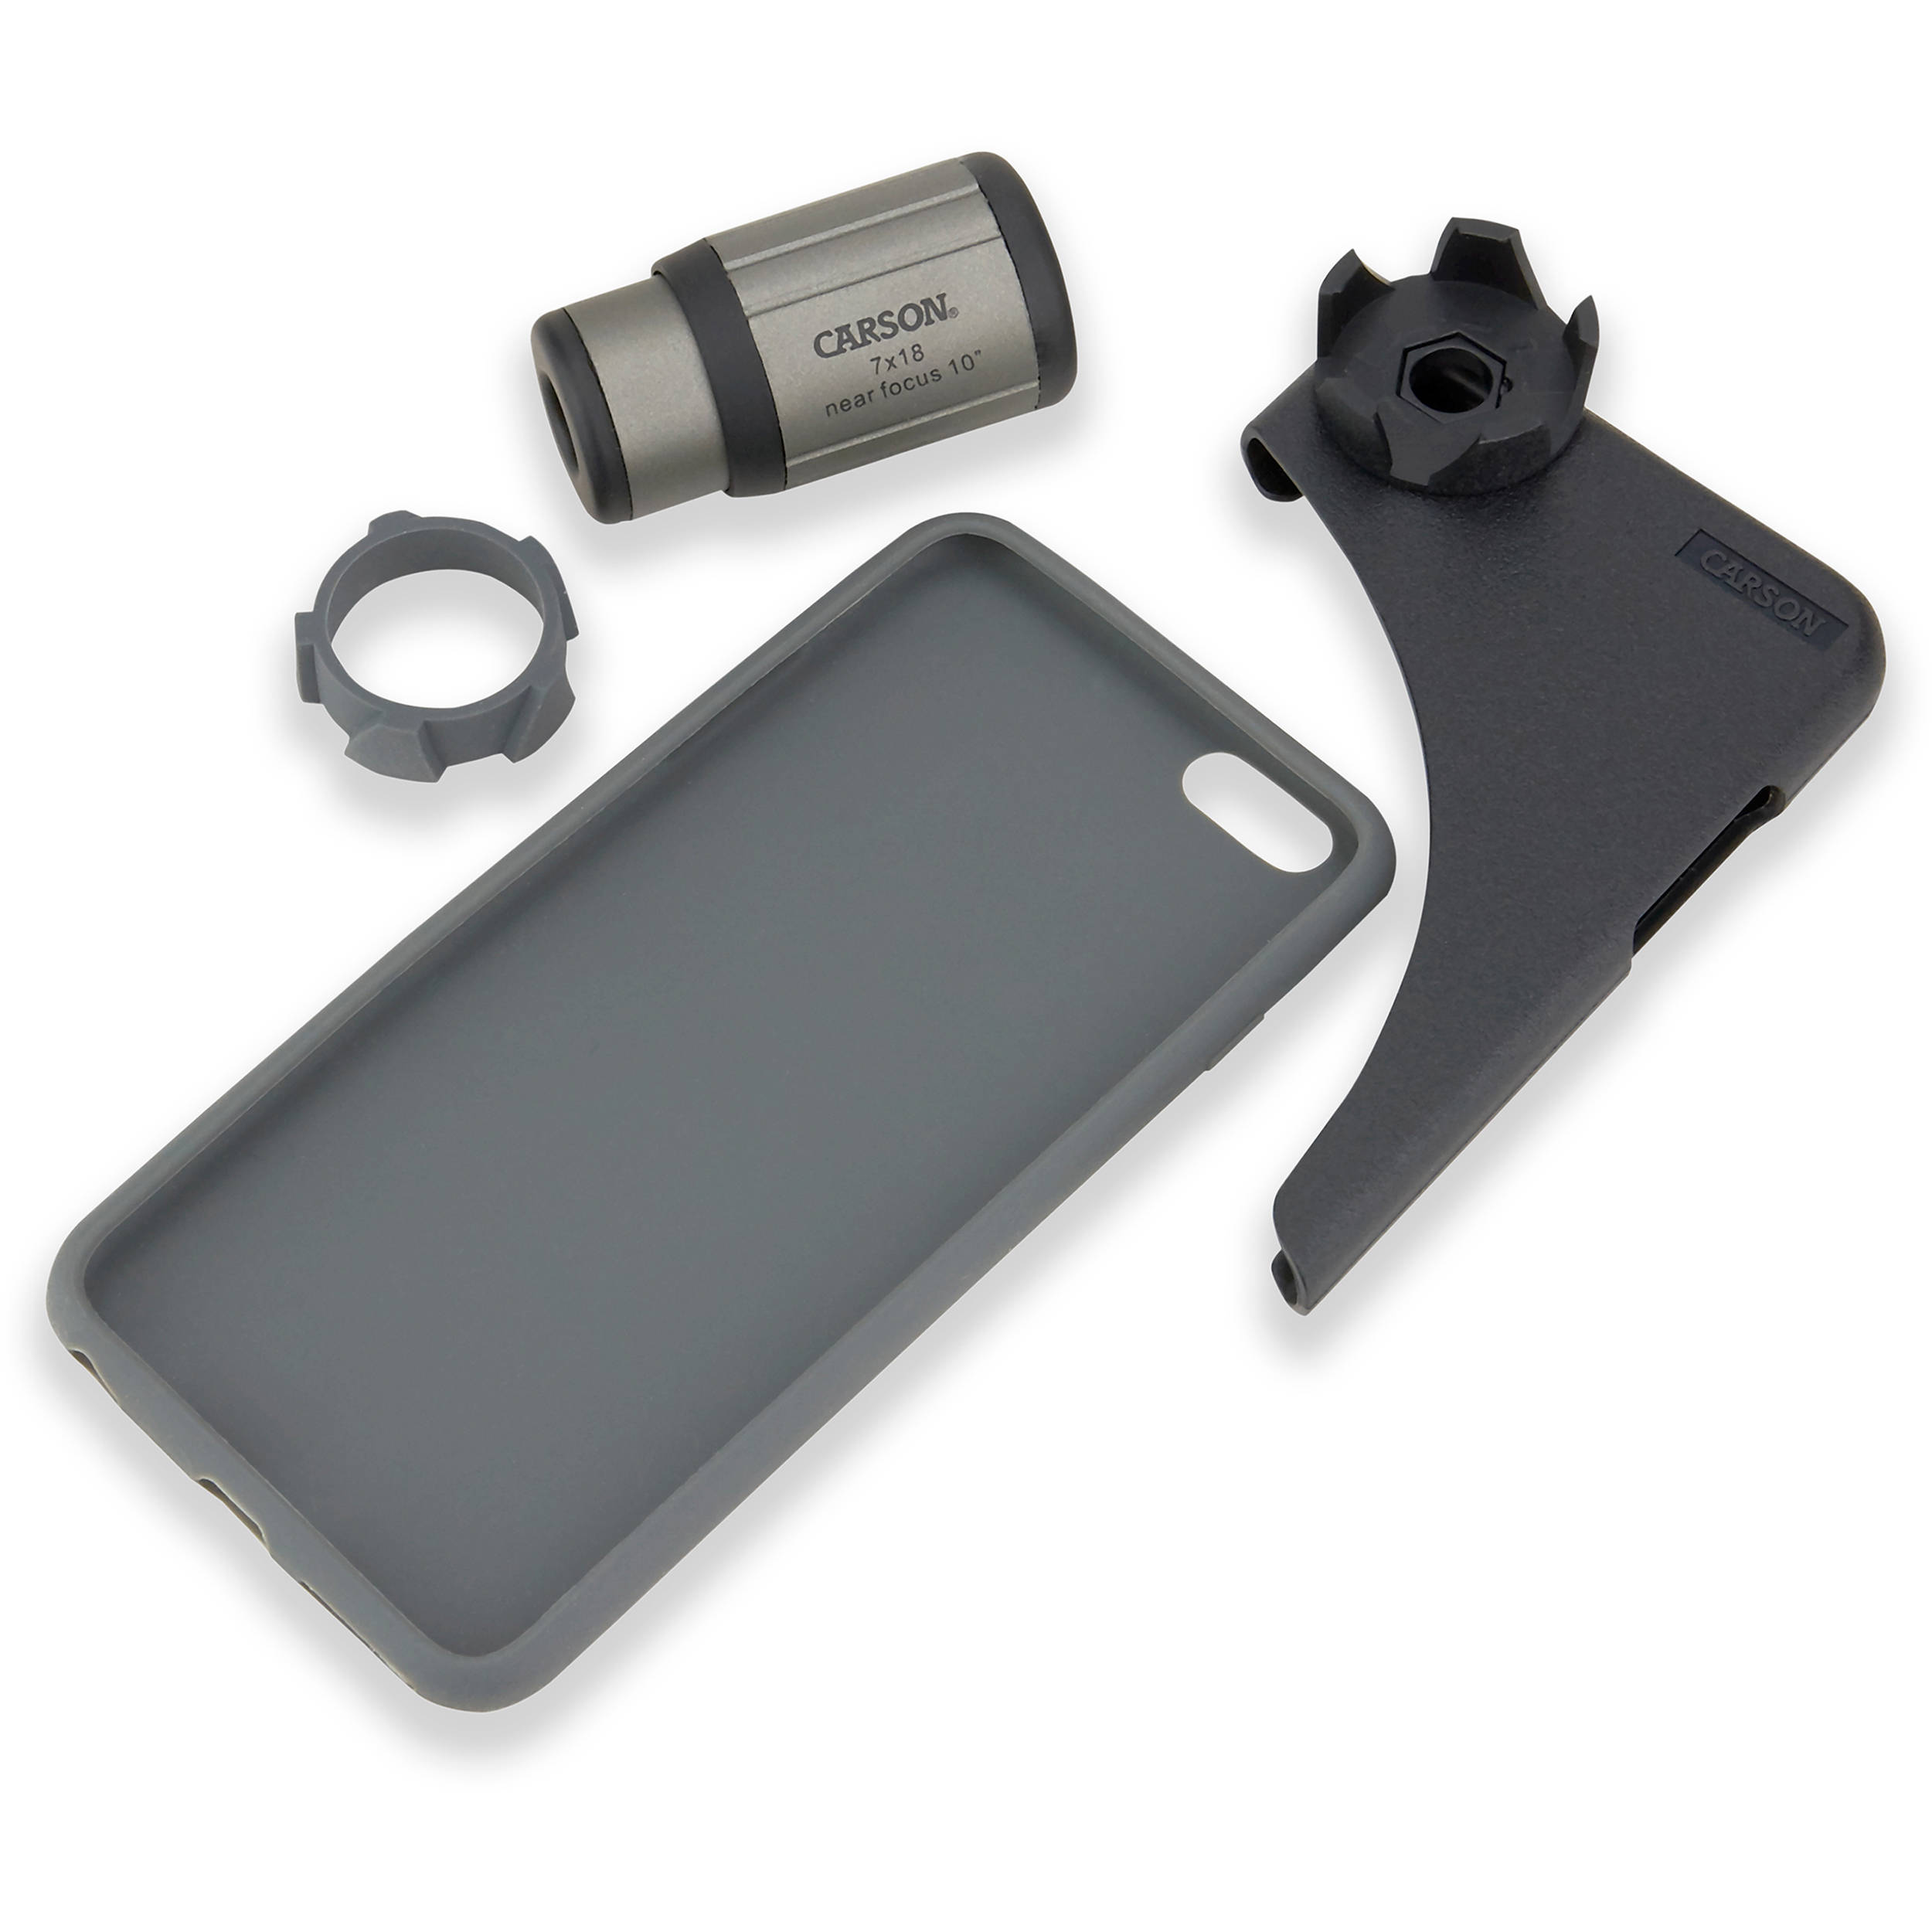 carson hookupz iphone 5 Buy carson hookupz iphone 4/4s/5/5s binocular adapter for most full sized binoculars (ib-542): microscope accessories - amazoncom free delivery possible on eligible purchases.